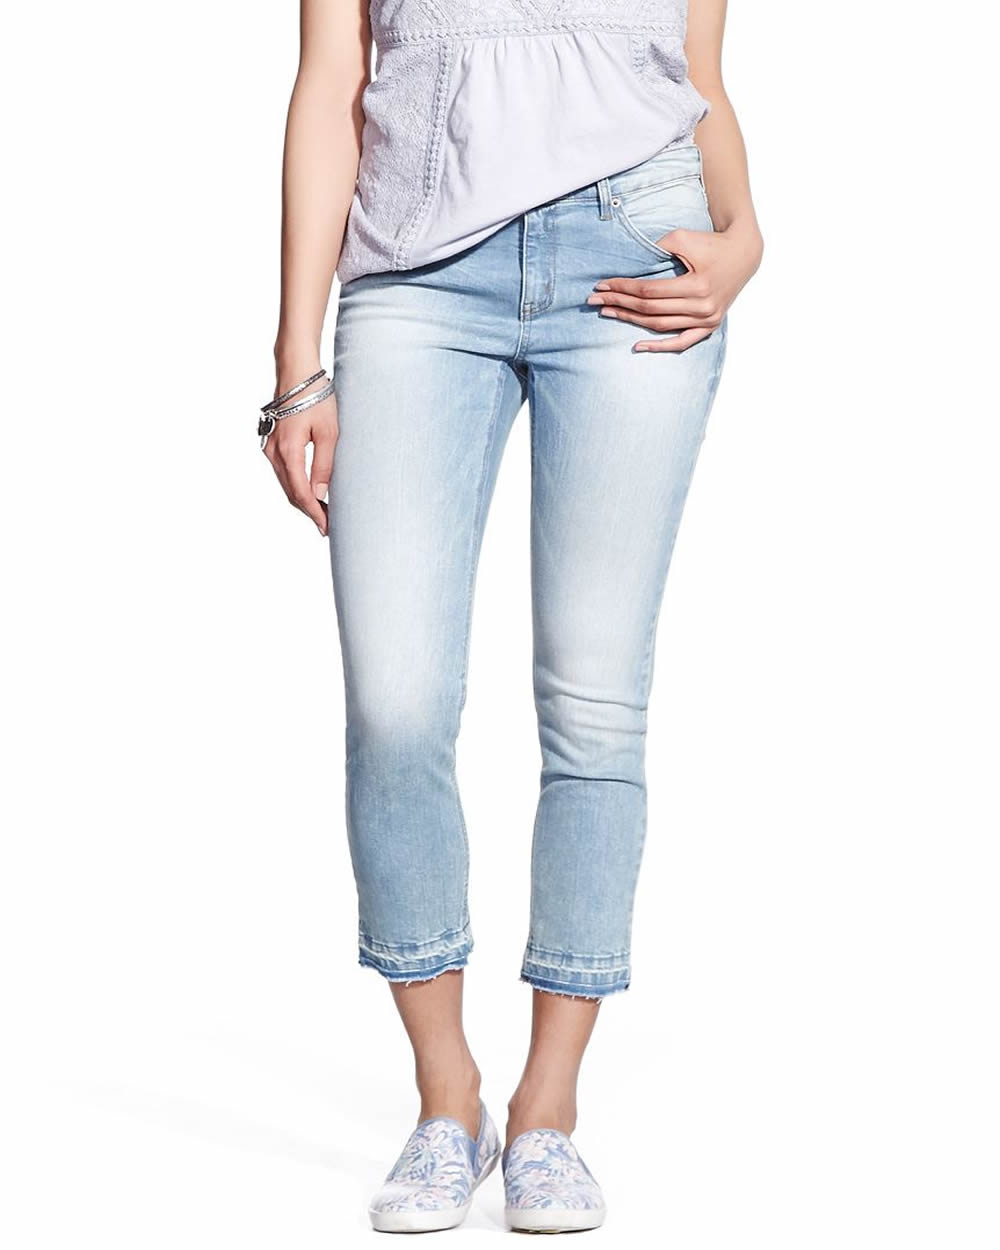 Wearing skinny jeans with ankle boots is a great way to create an unbroken leg line, for a long and lean silhouette, especially when you match your jeans color to the shade of your ankle boots. For the skinniest effect, try wearing a pair of skinny, inky black jeans with black suede or matte black leather ankle .